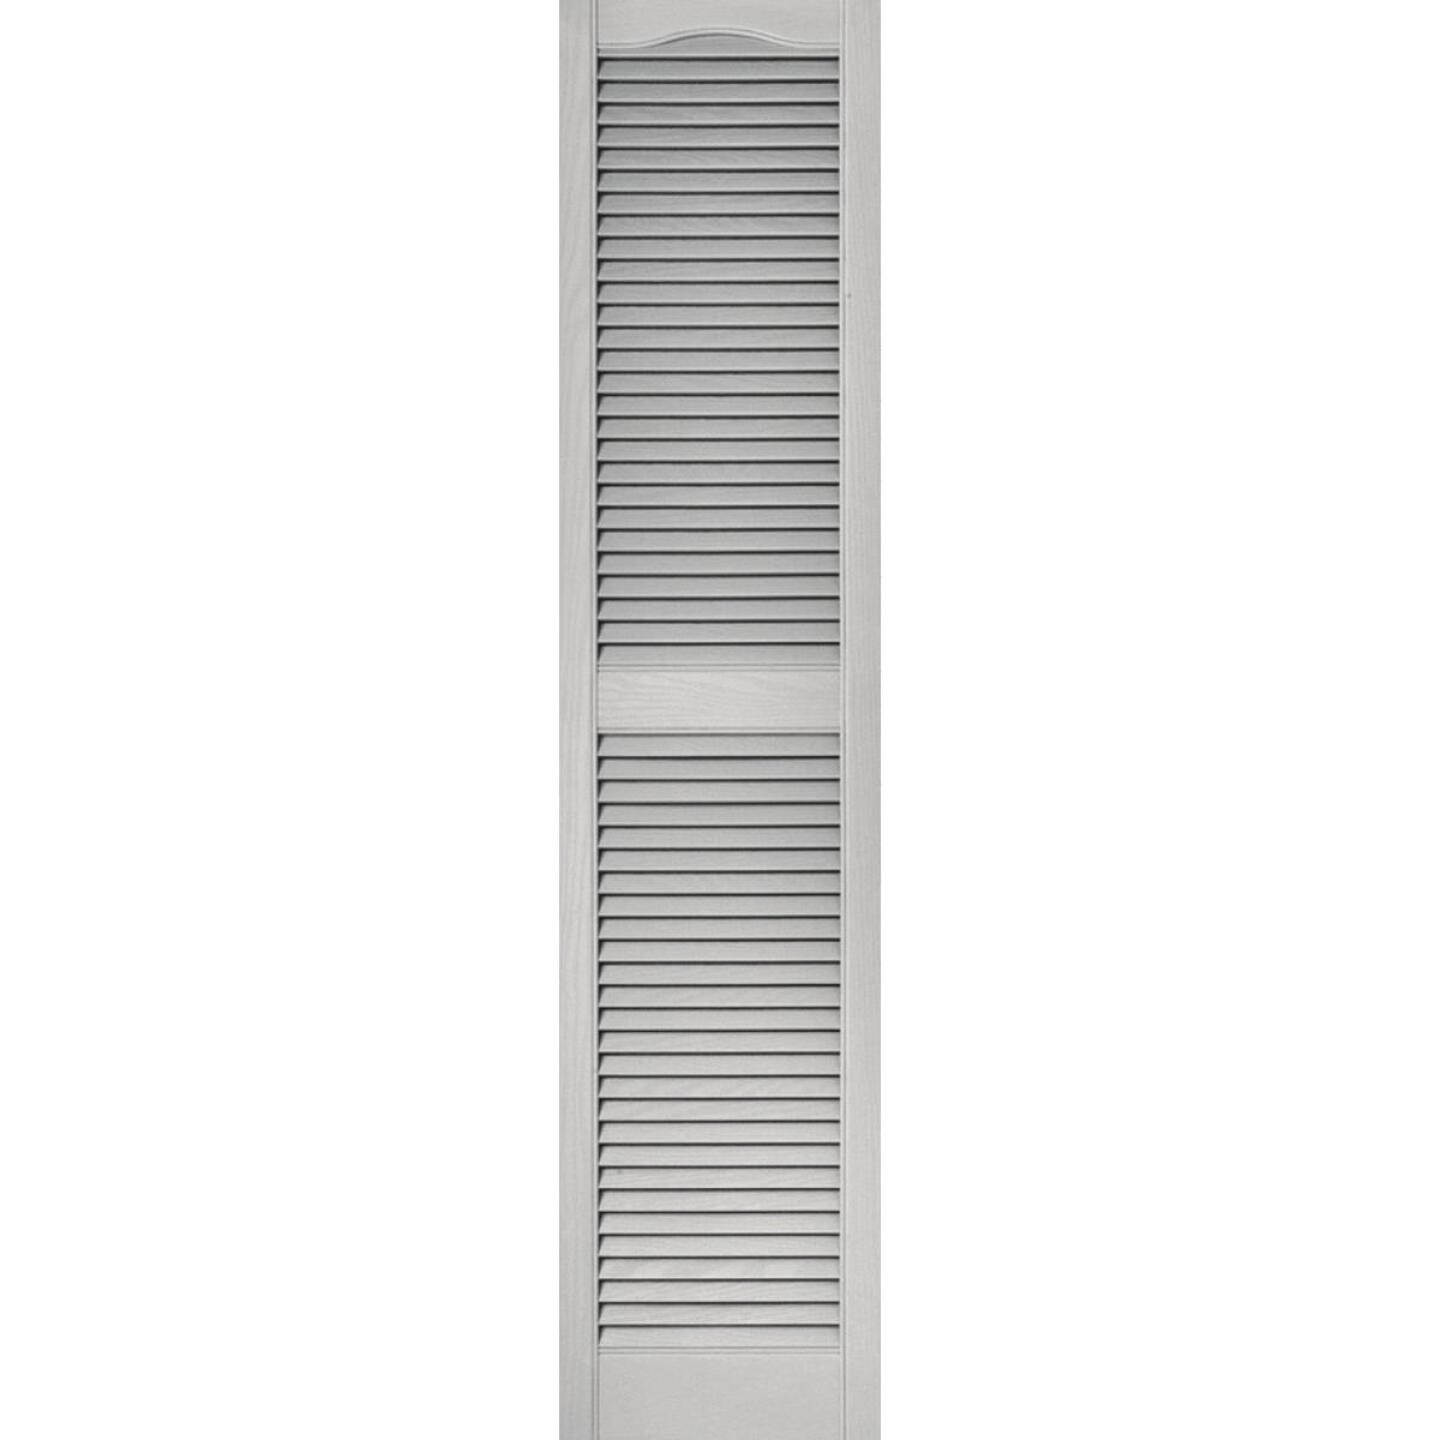 Builders Edge 15 In. x 64 In. Vinyl Louvered Shutter, (2-Pack) Image 1